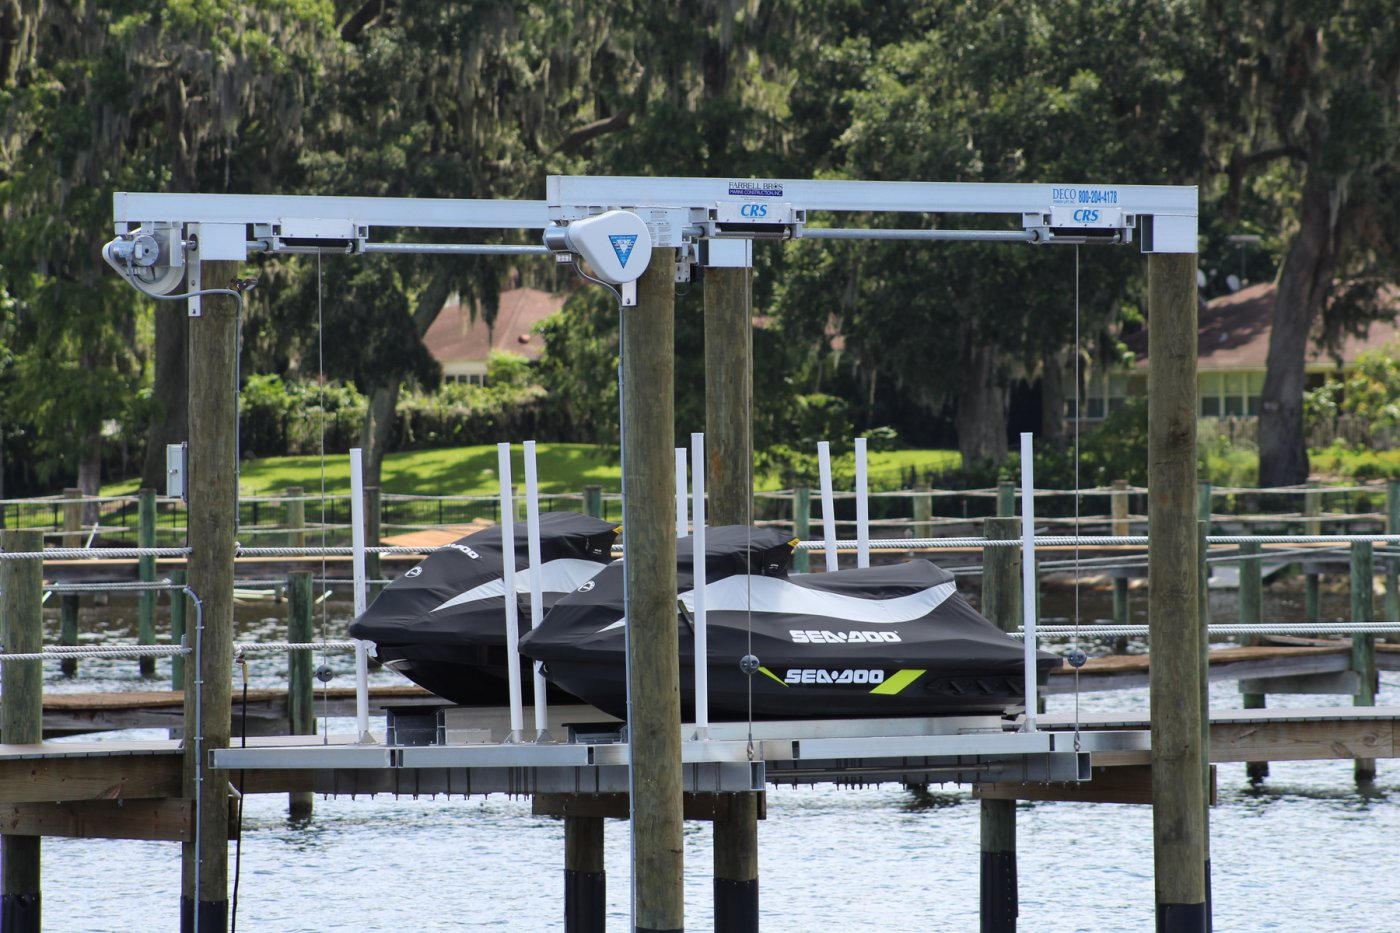 4,000 lb Deco Lift with CRS and Aluminum Deck for Dual PWC